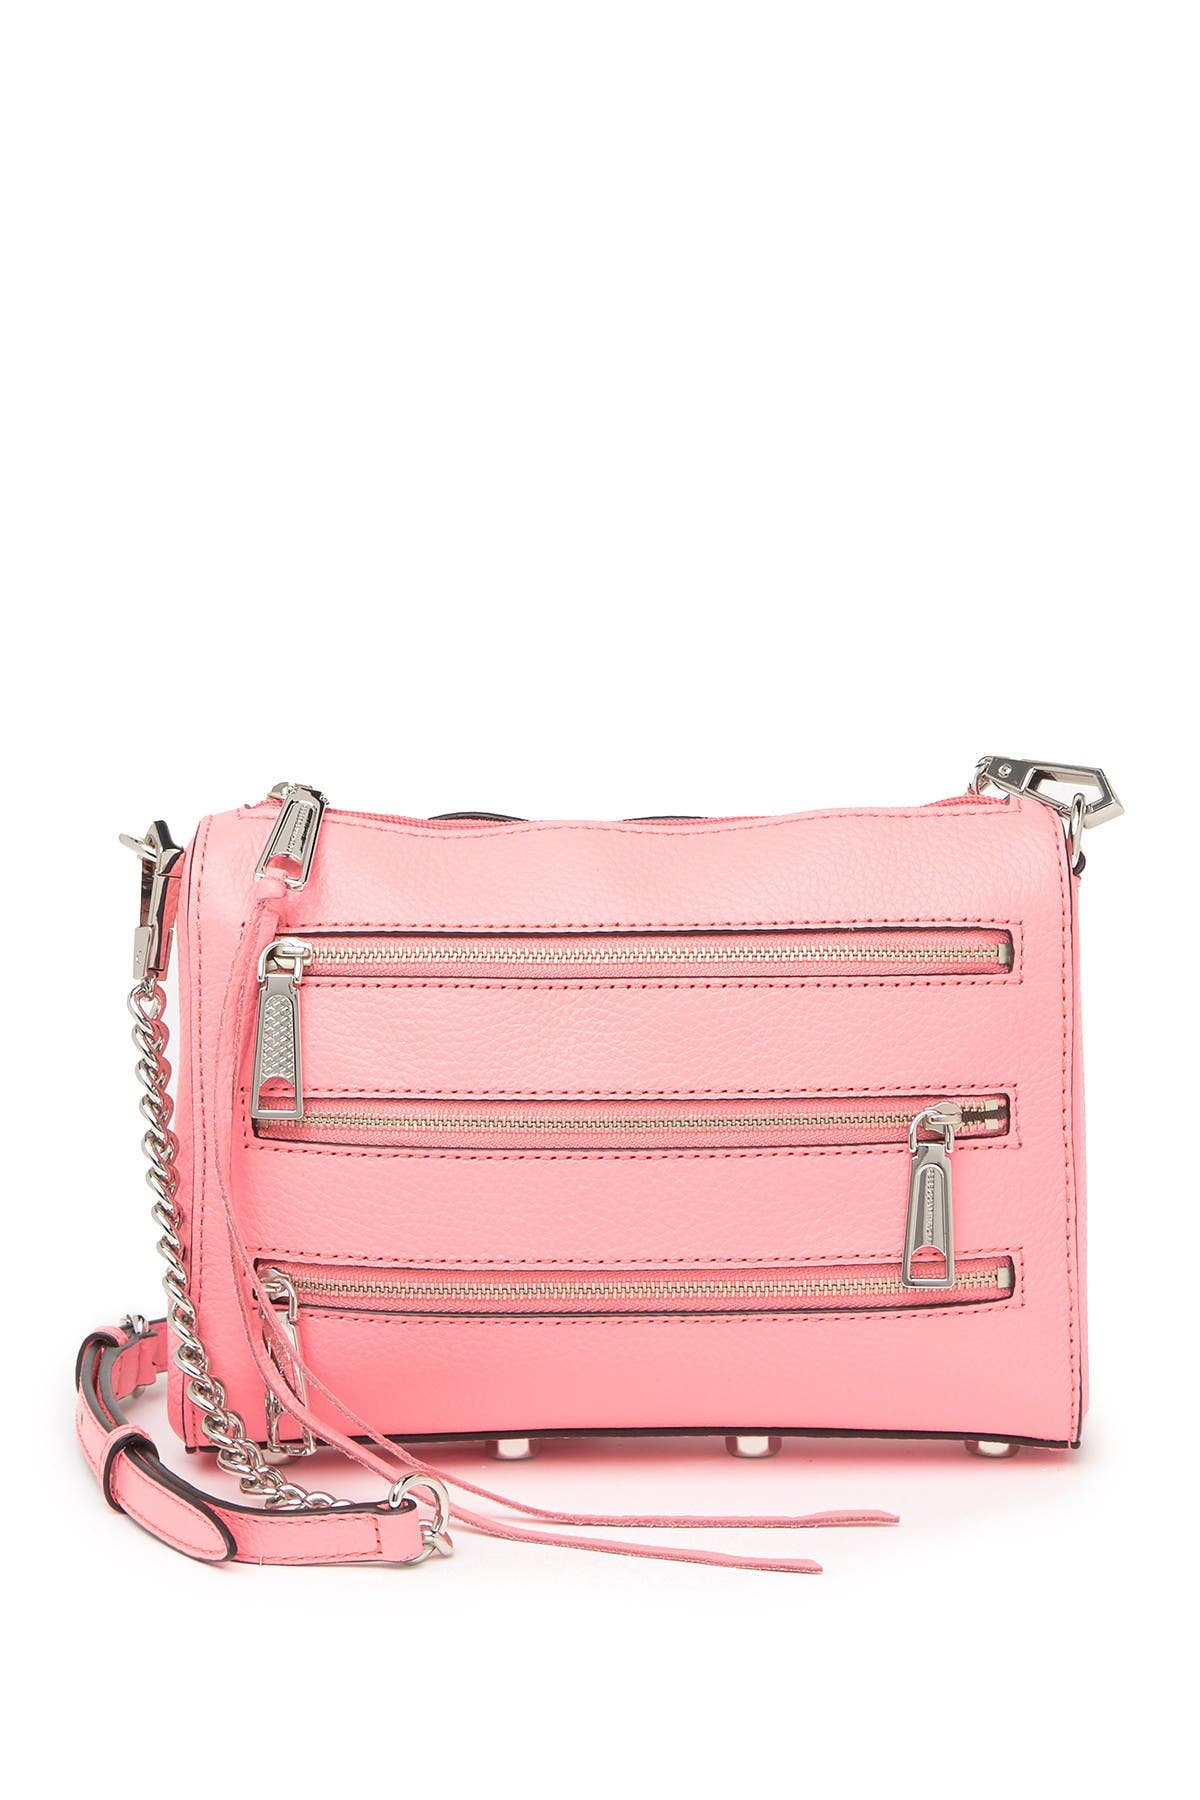 Image of Rebecca Minkoff Mini 5 Zip Leather Crossbody Bag